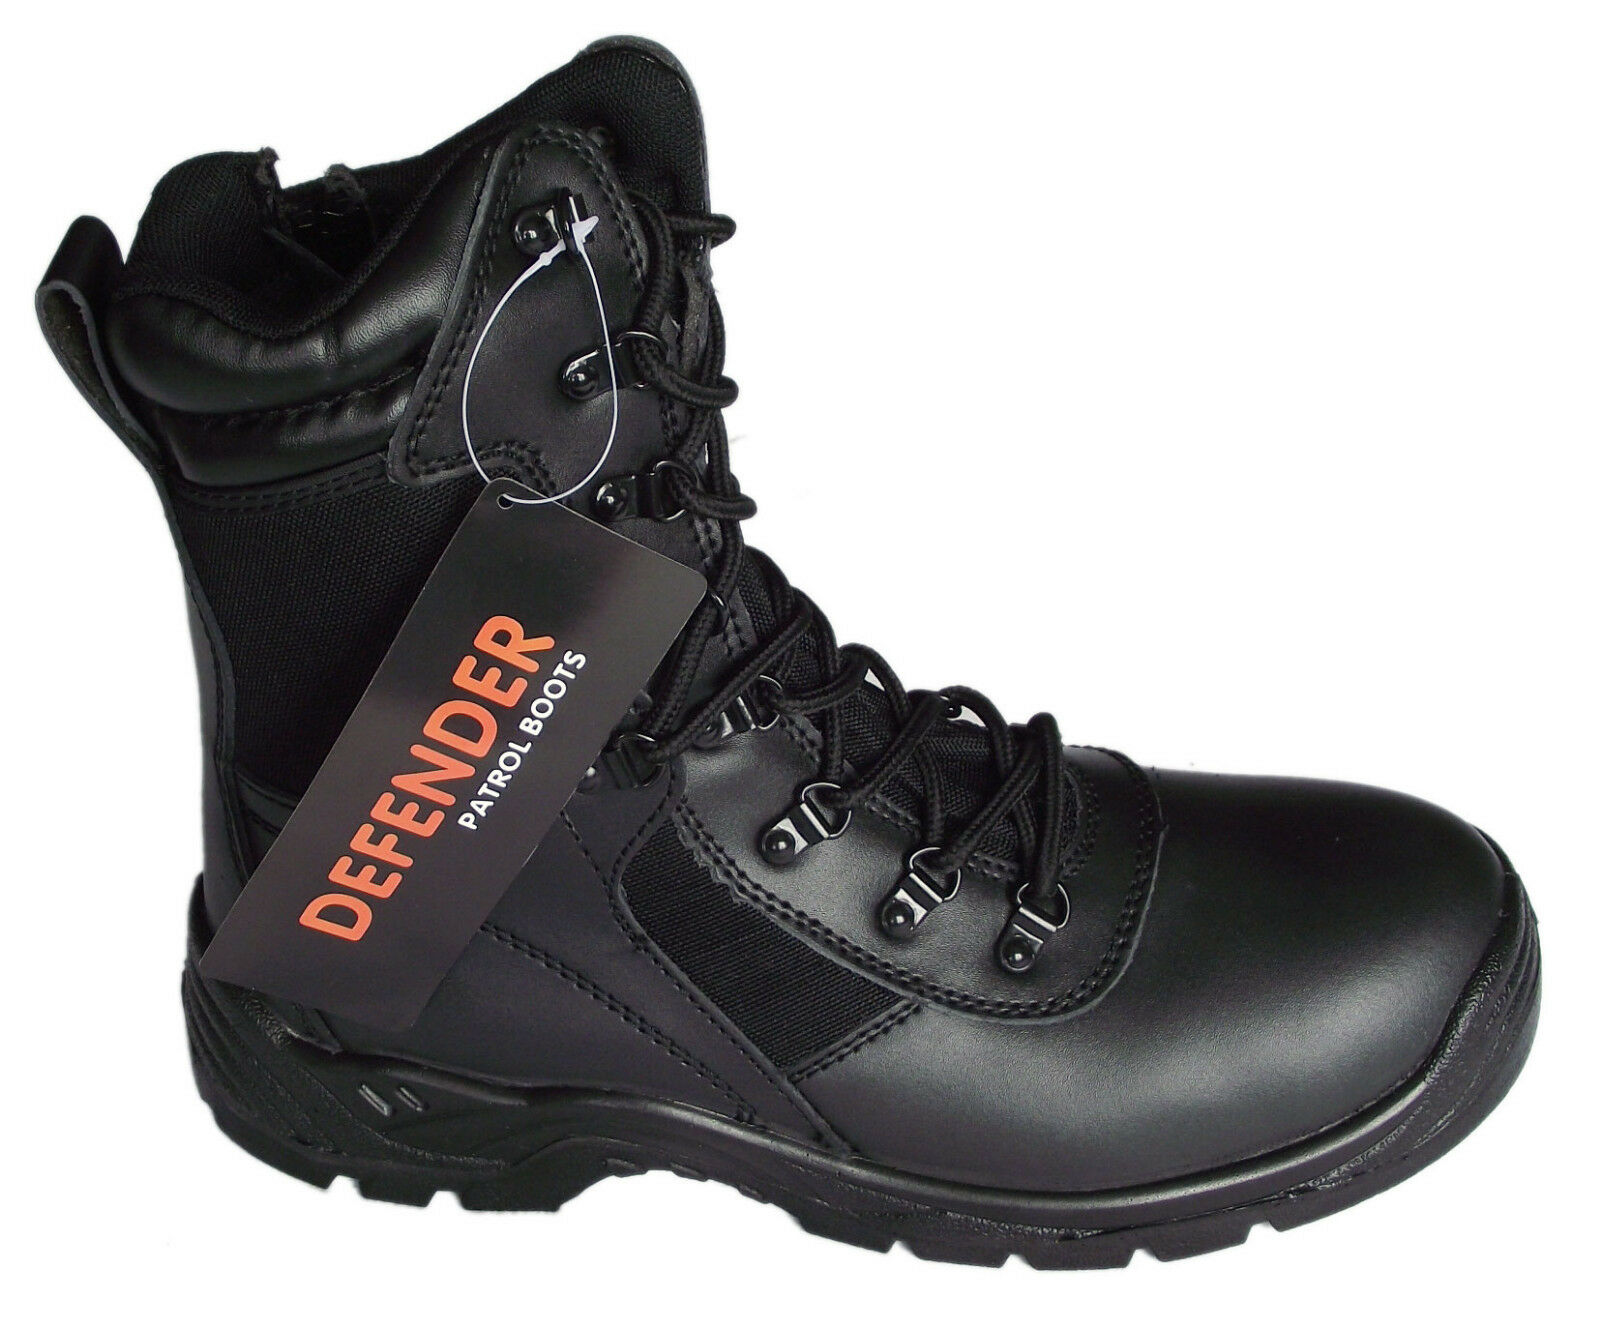 NEW SNOW BOOTS MILITARY BLACK LEATHER ZIP COMBAT WALKING SIZE 7 8 10 13 RRP